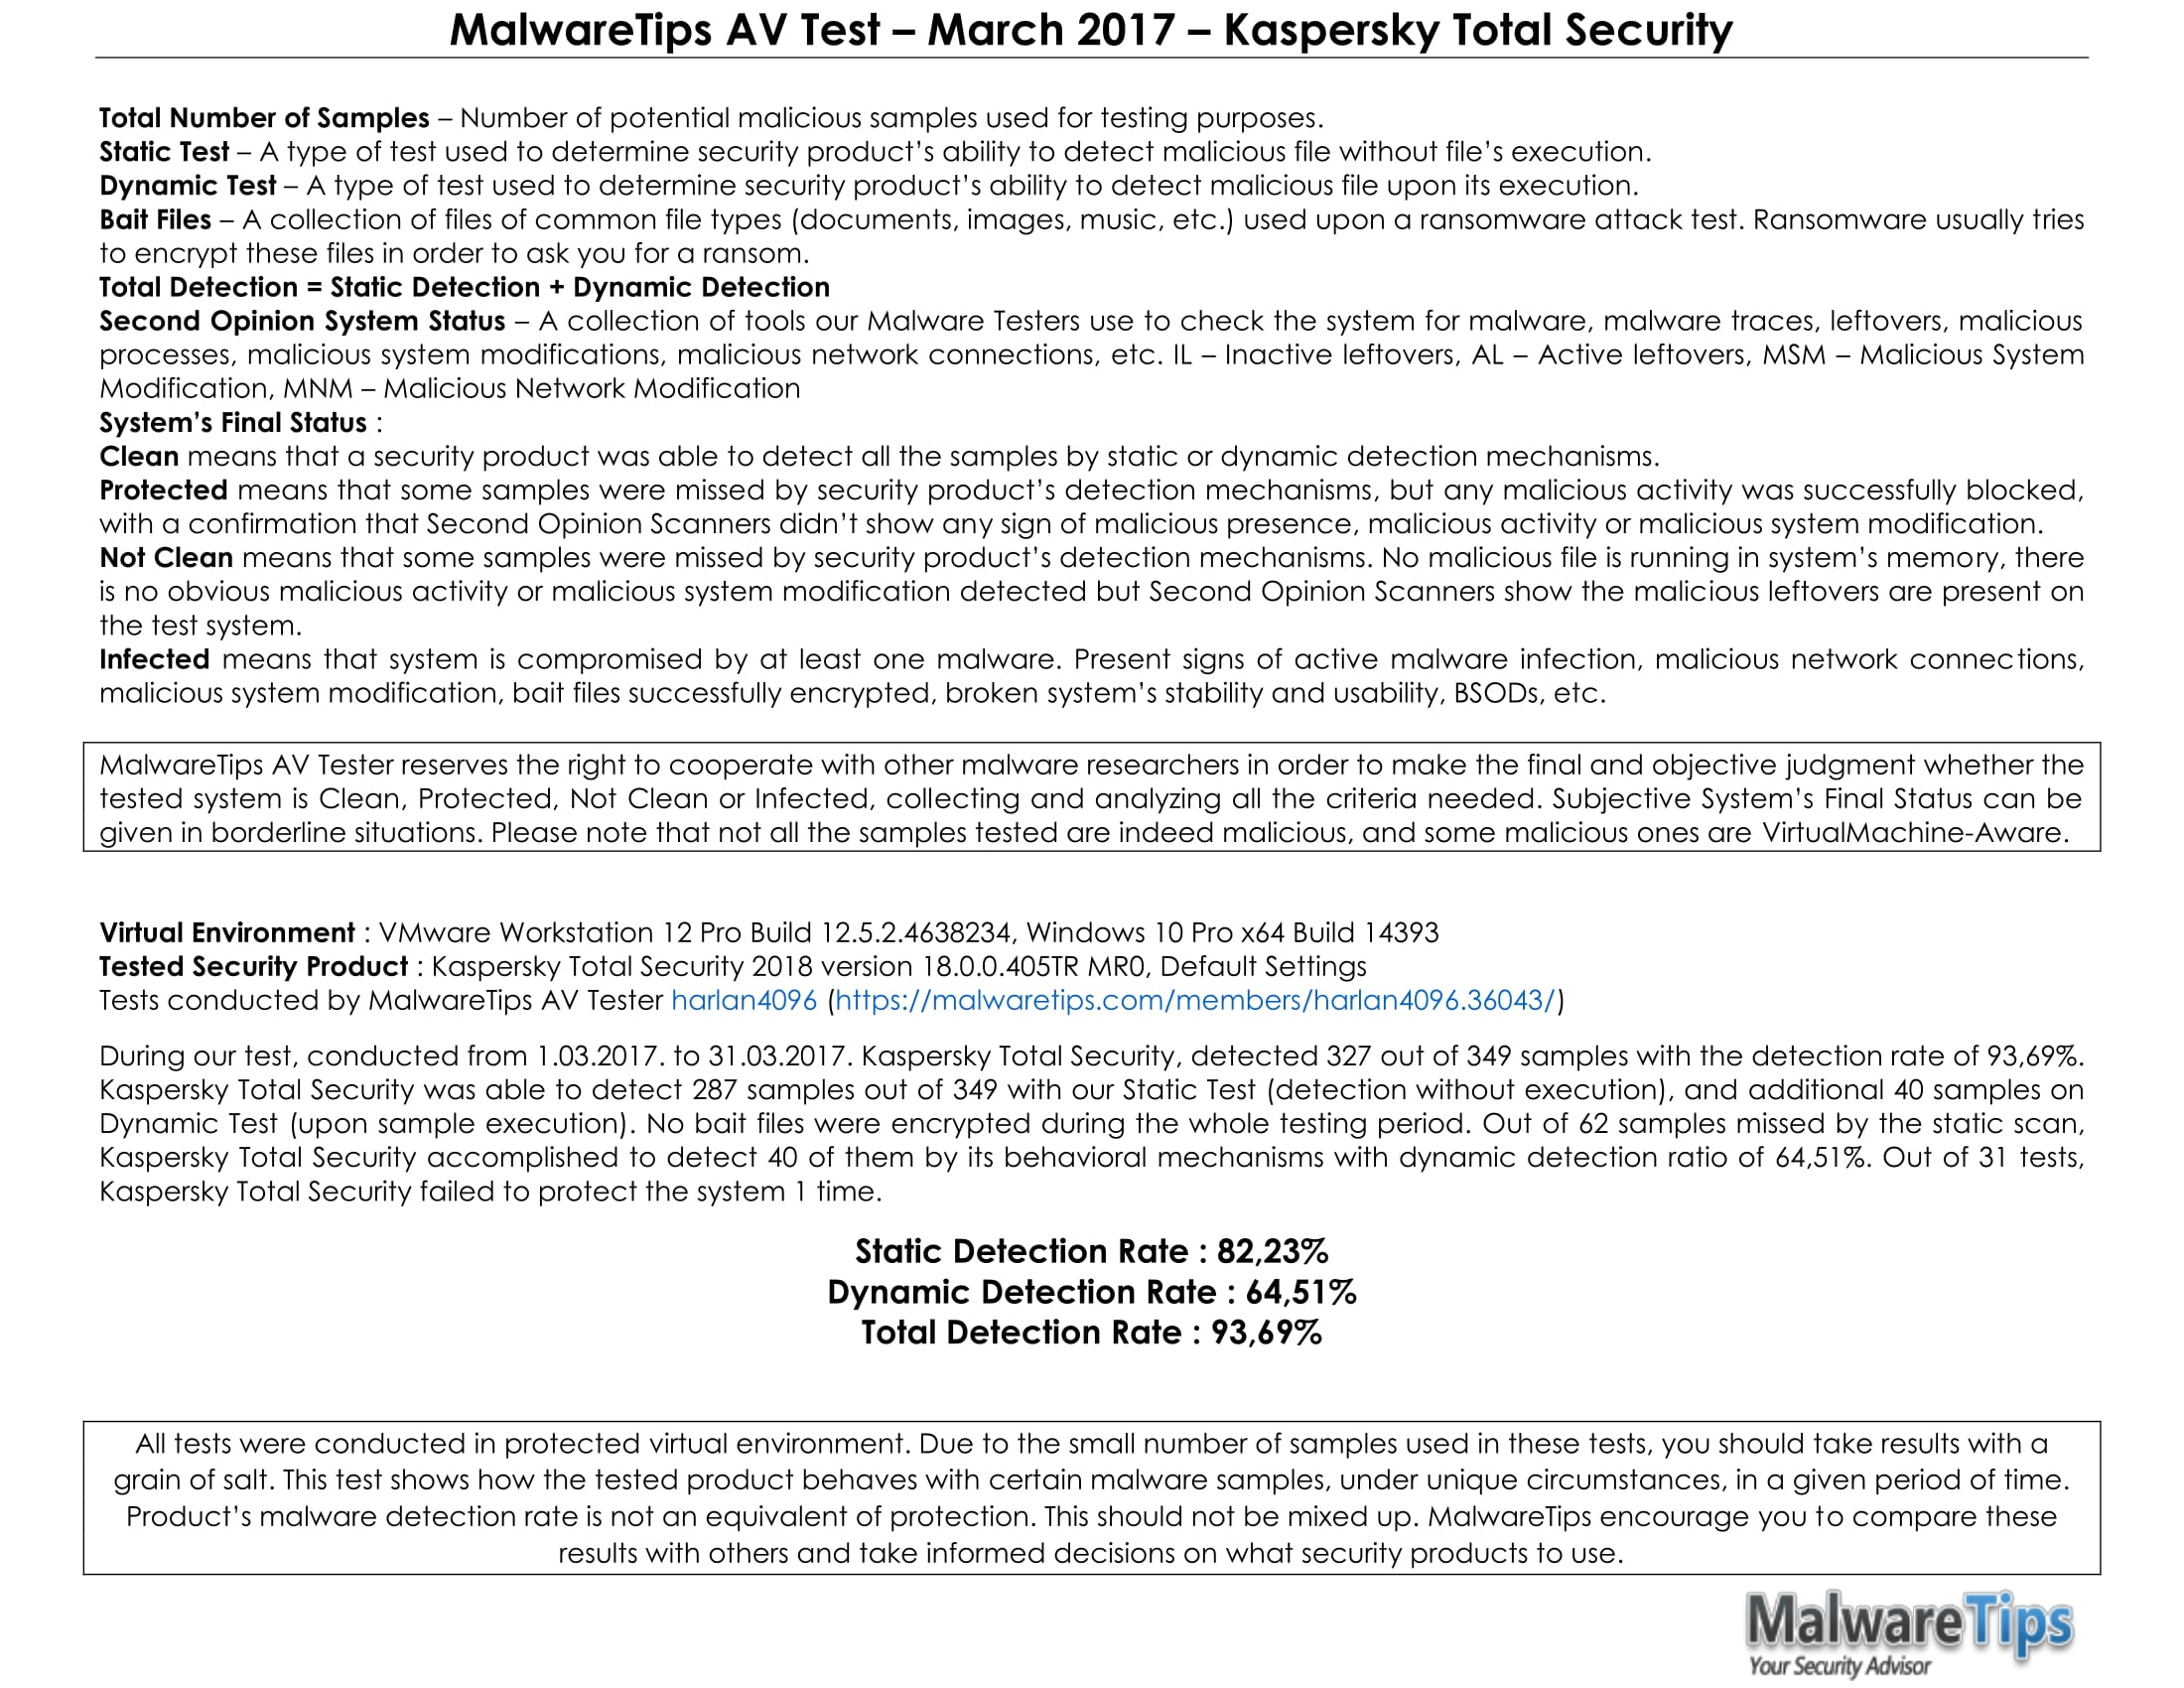 MalwareTips AV Test – March 2017 – Kaspersky Total Security-2.jpg